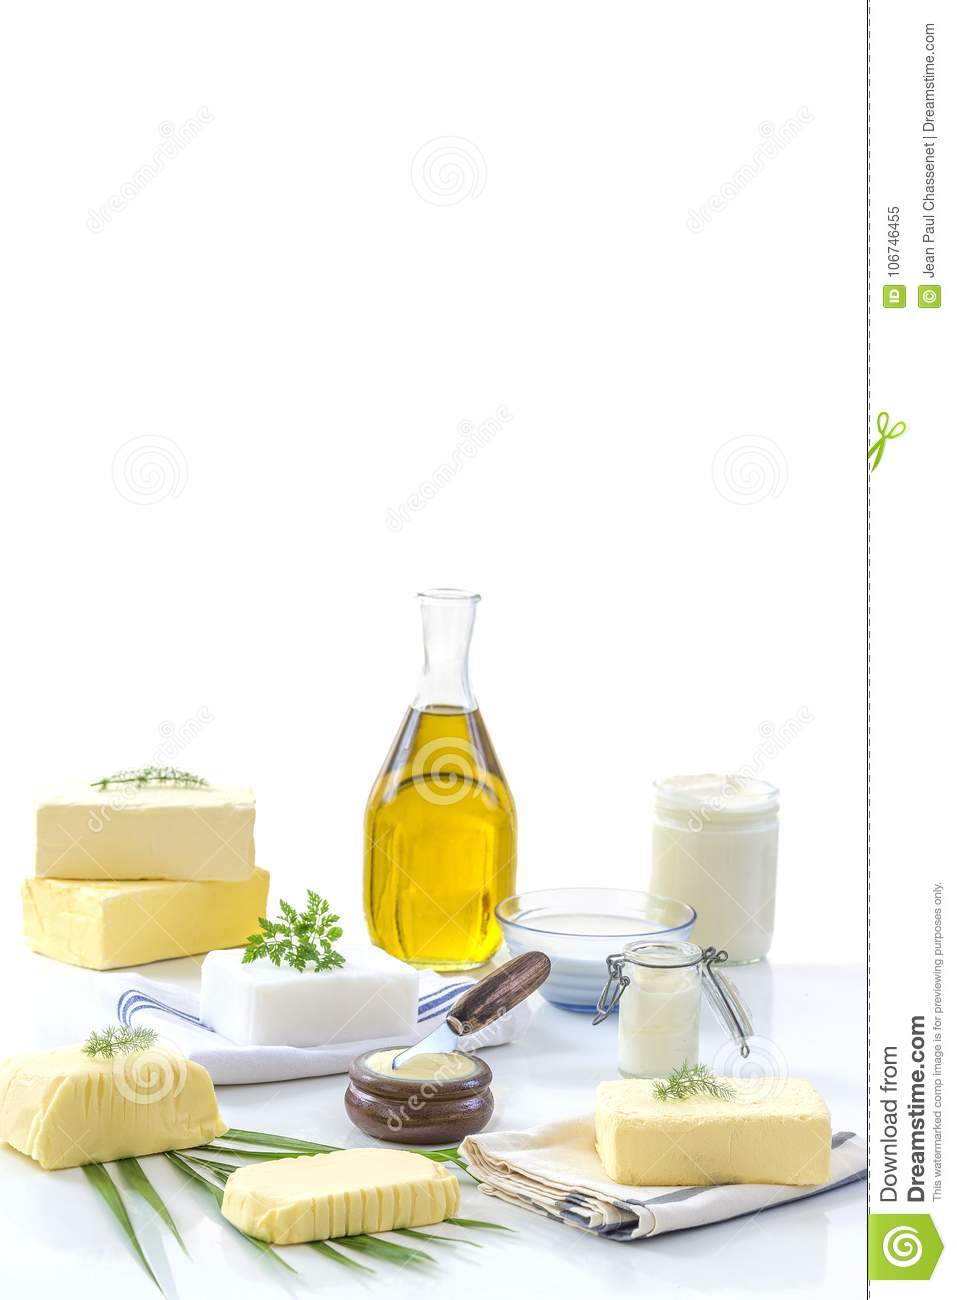 Food Fats and oil : set of dairy product and oil and animal fats on a white background